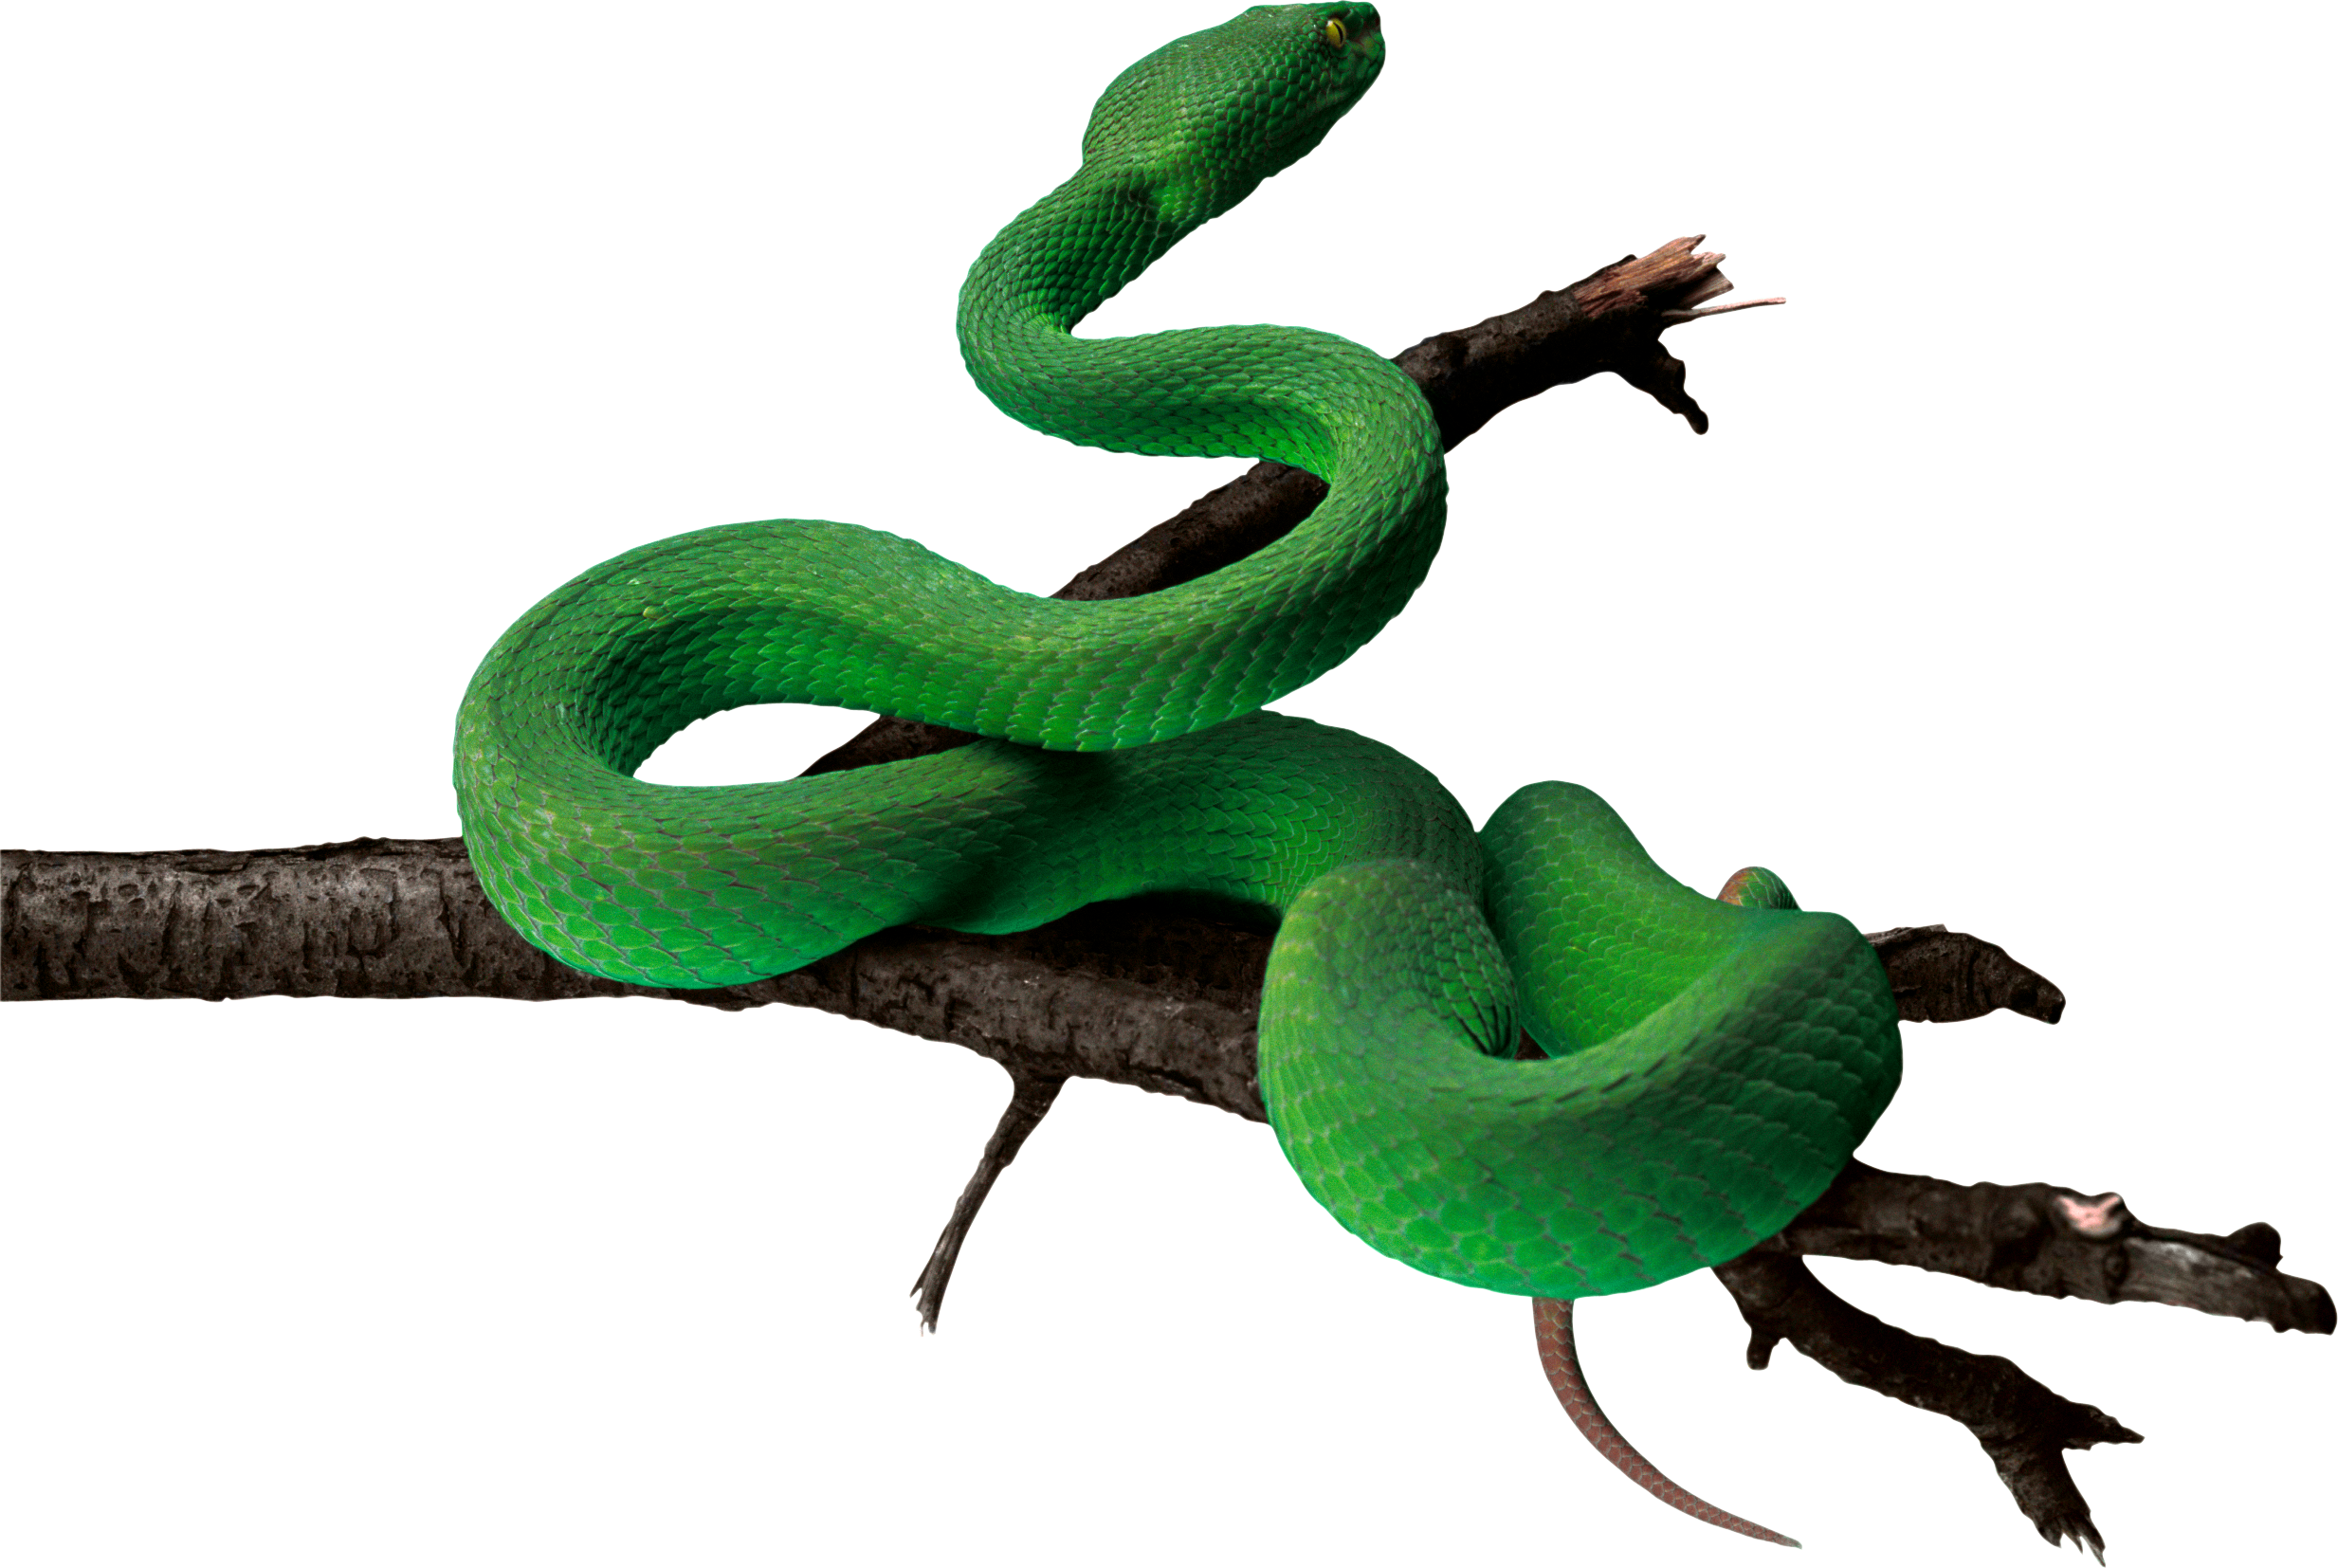 Smooth Green Snake clipart black and white Green image PNG snake snakes